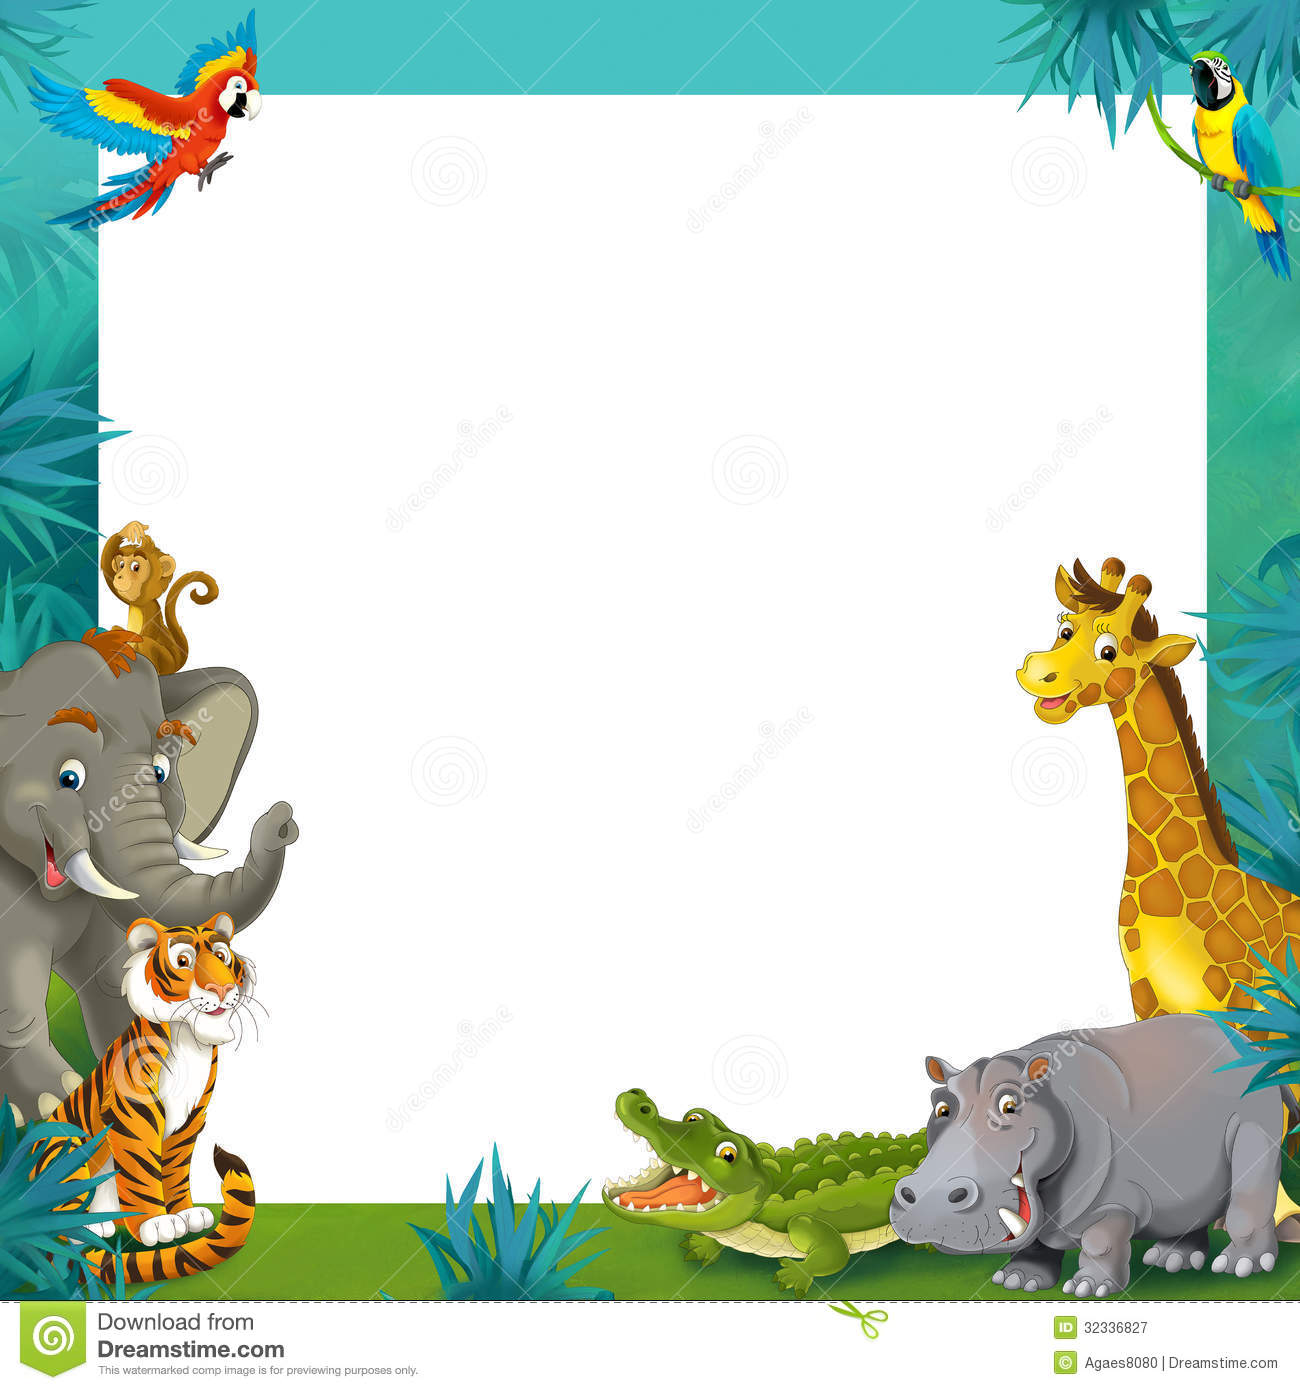 Cartoon Safari - Jungle - Frame Border Template - Illustration For The Children Stock ...